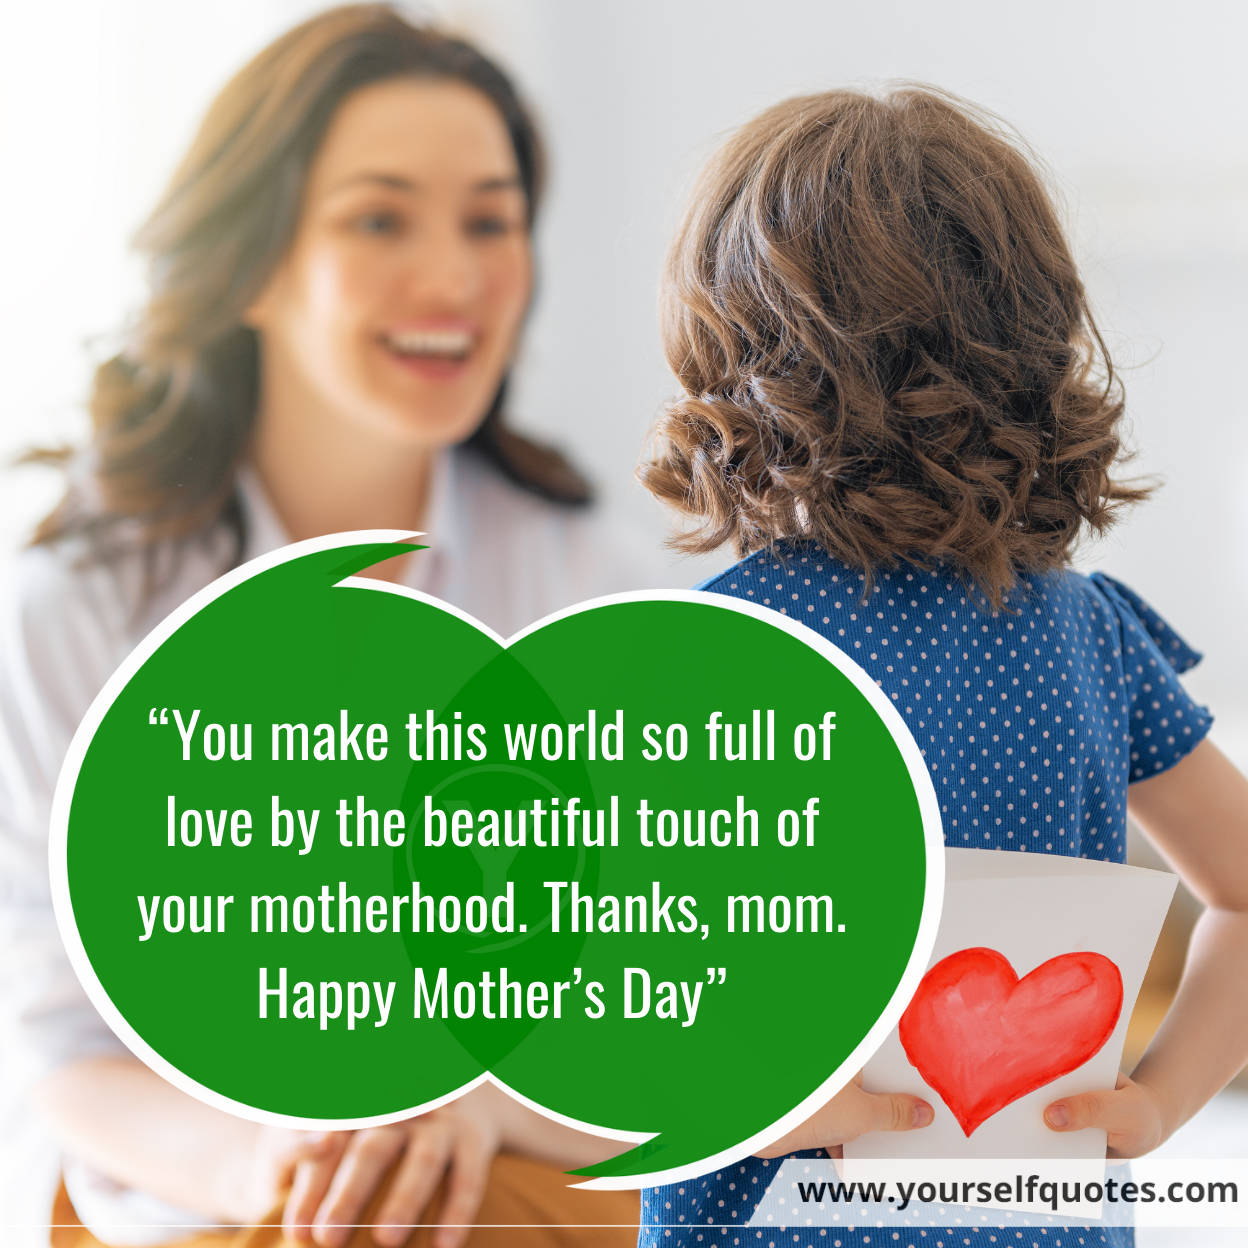 Mother's Day Wishes Quotes With Images